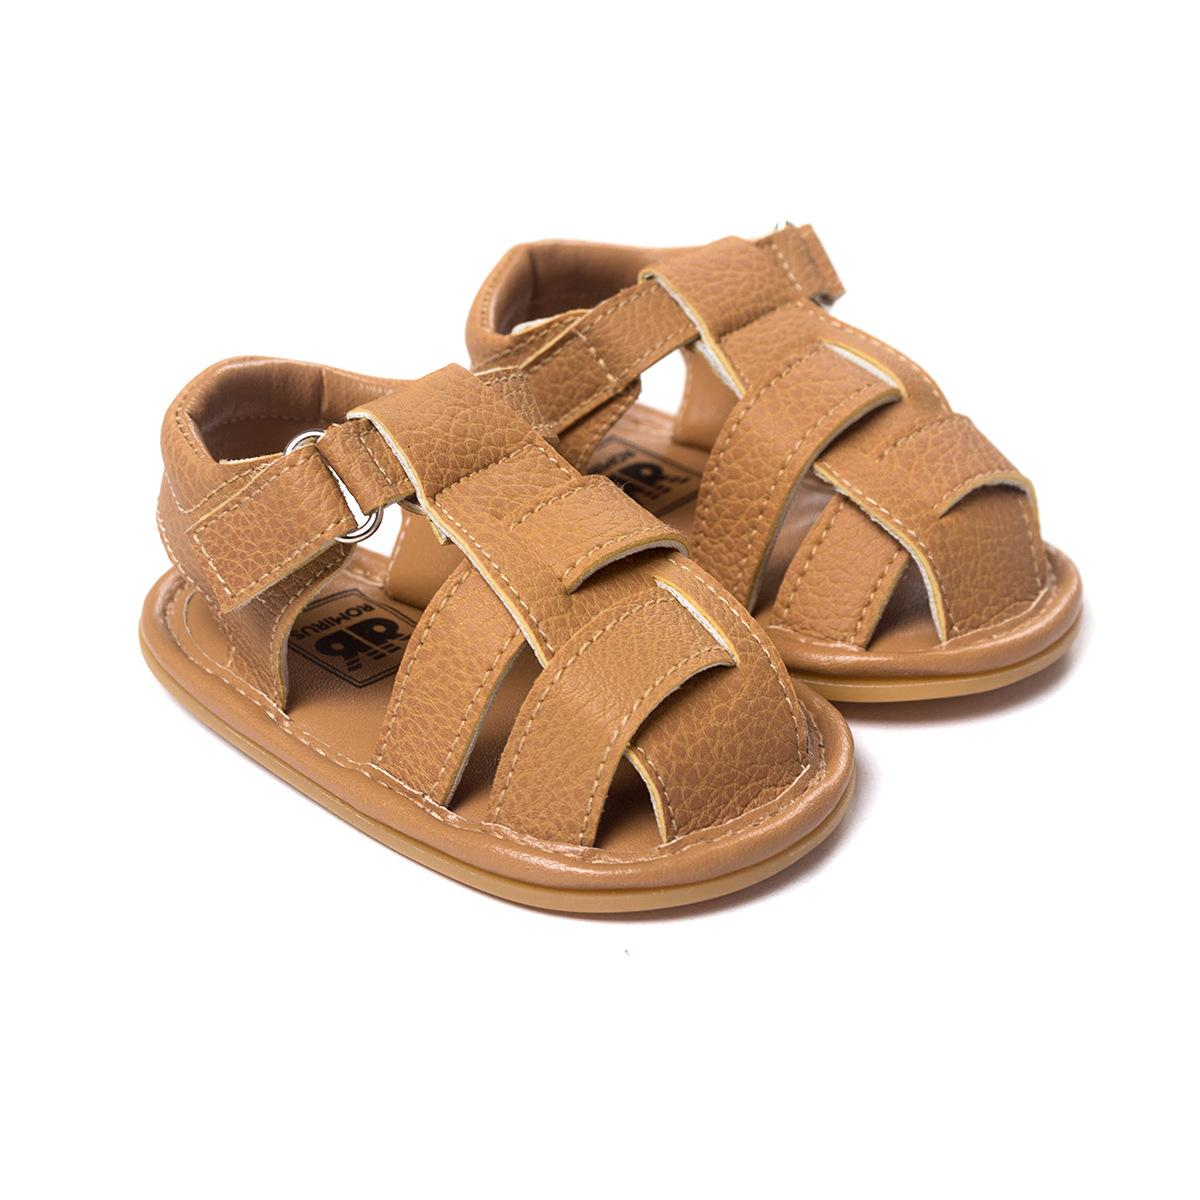 Summer Kids Baby Girls Boy Beach Moccasins Leather Sandal First Walker Shoes Infant Prewalker Toddler Shoes Children Footwear Baby First Wal